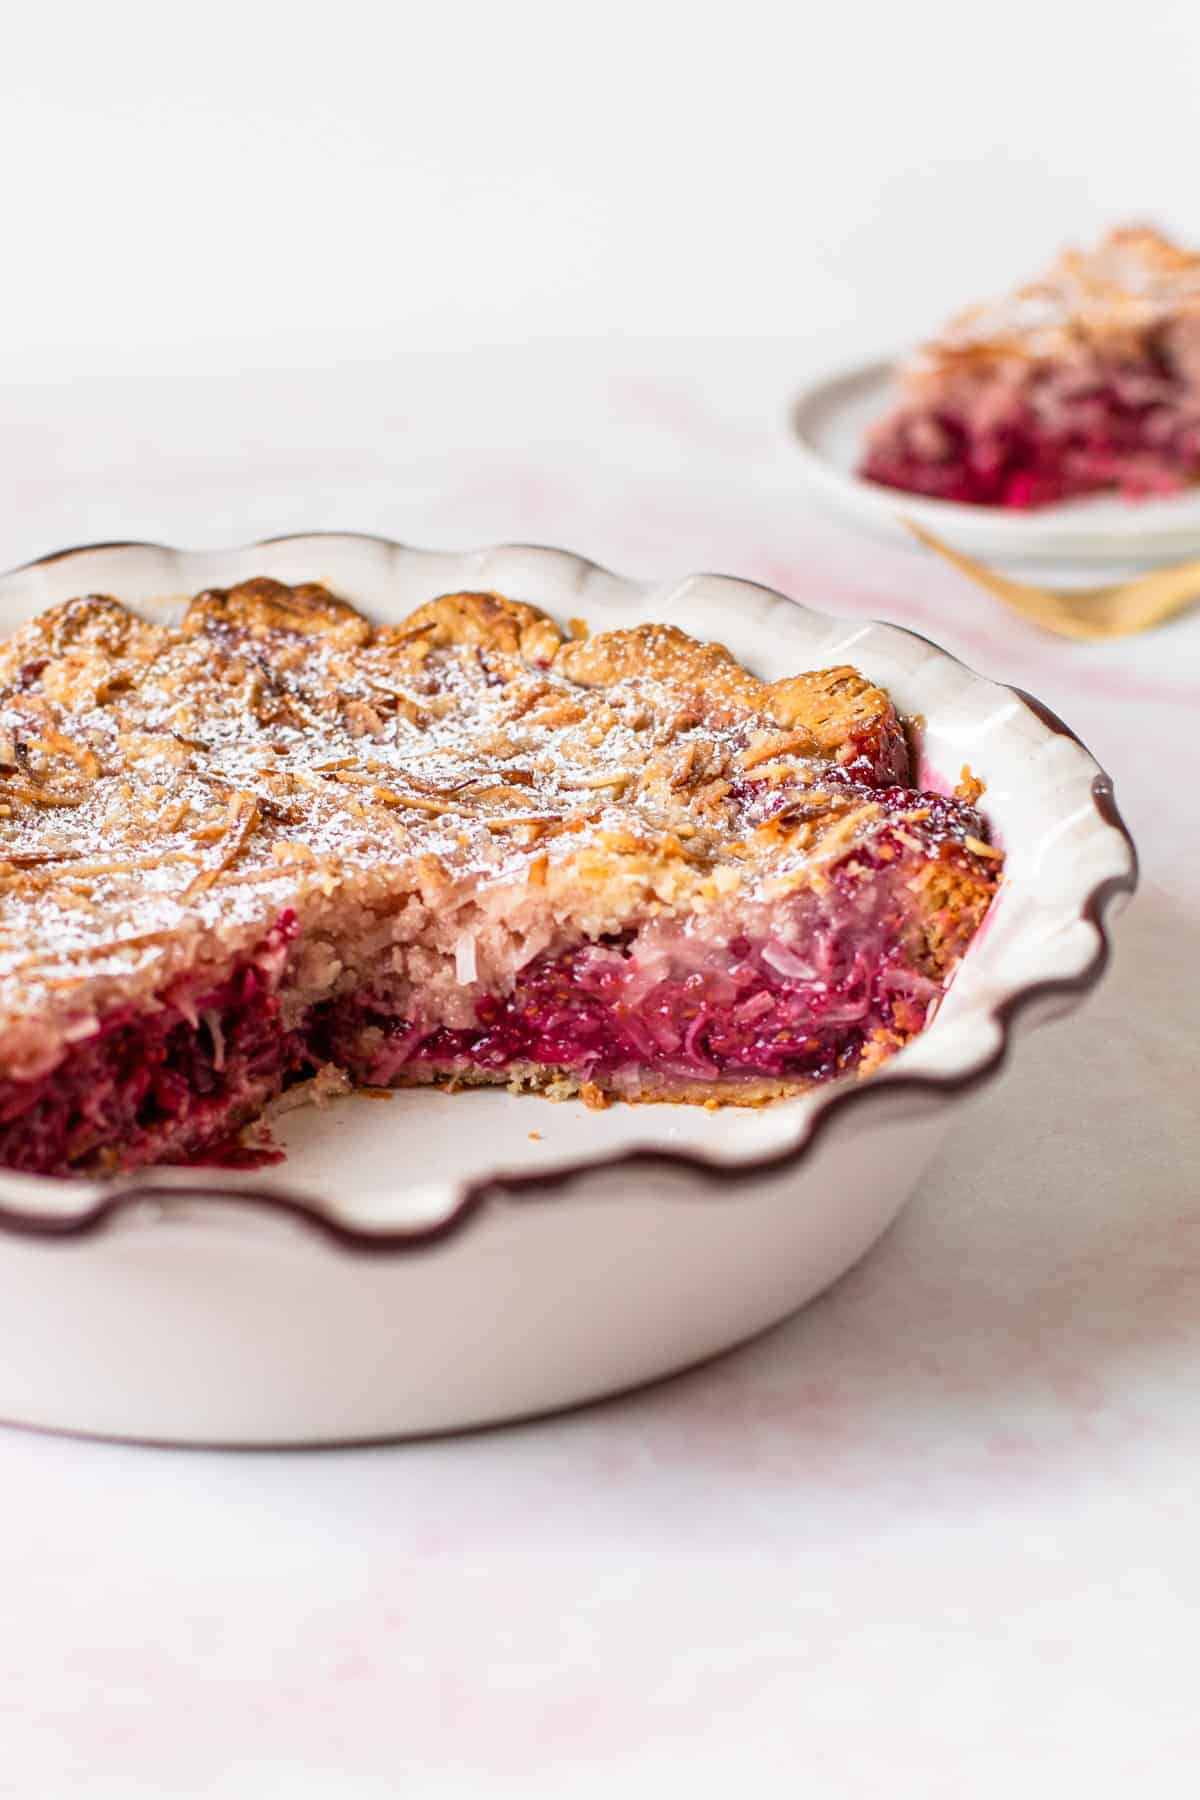 Slices of raspberry pie with coconut streusel topping.